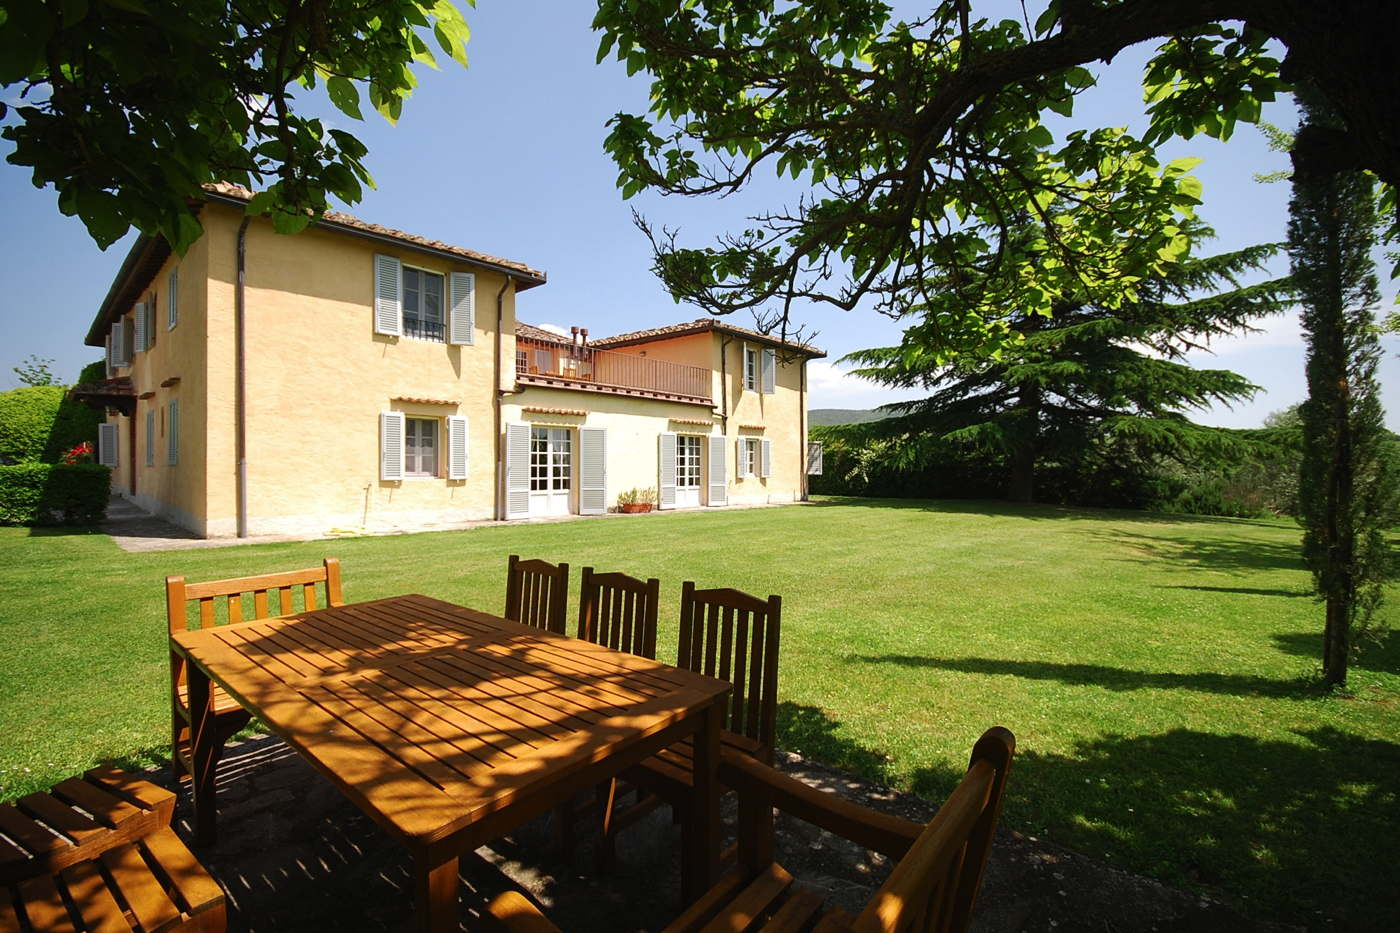 Apartment Il Caminetto